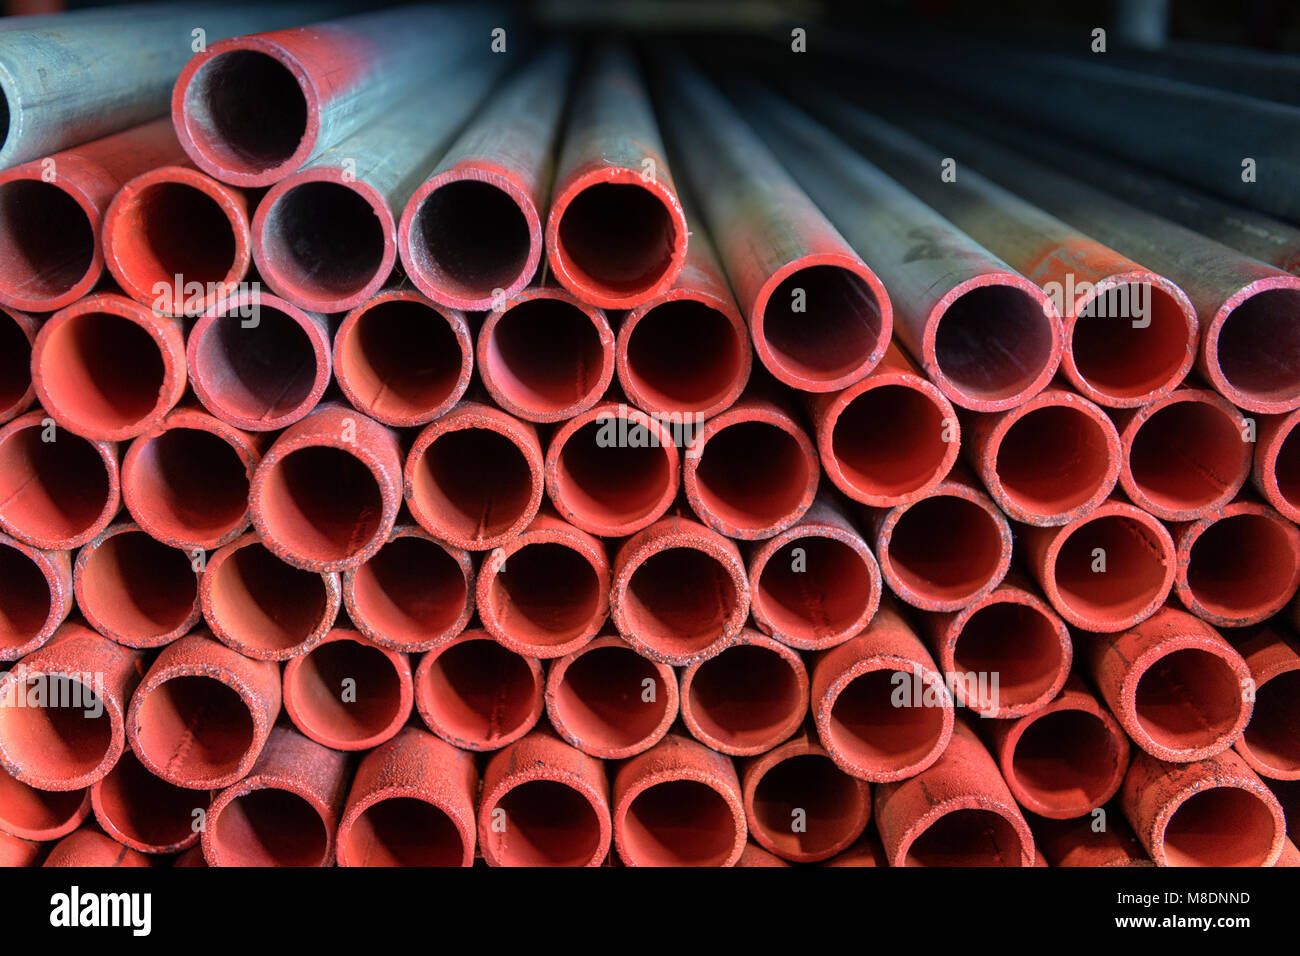 Close up detail of scaffolding pipes - Stock Image